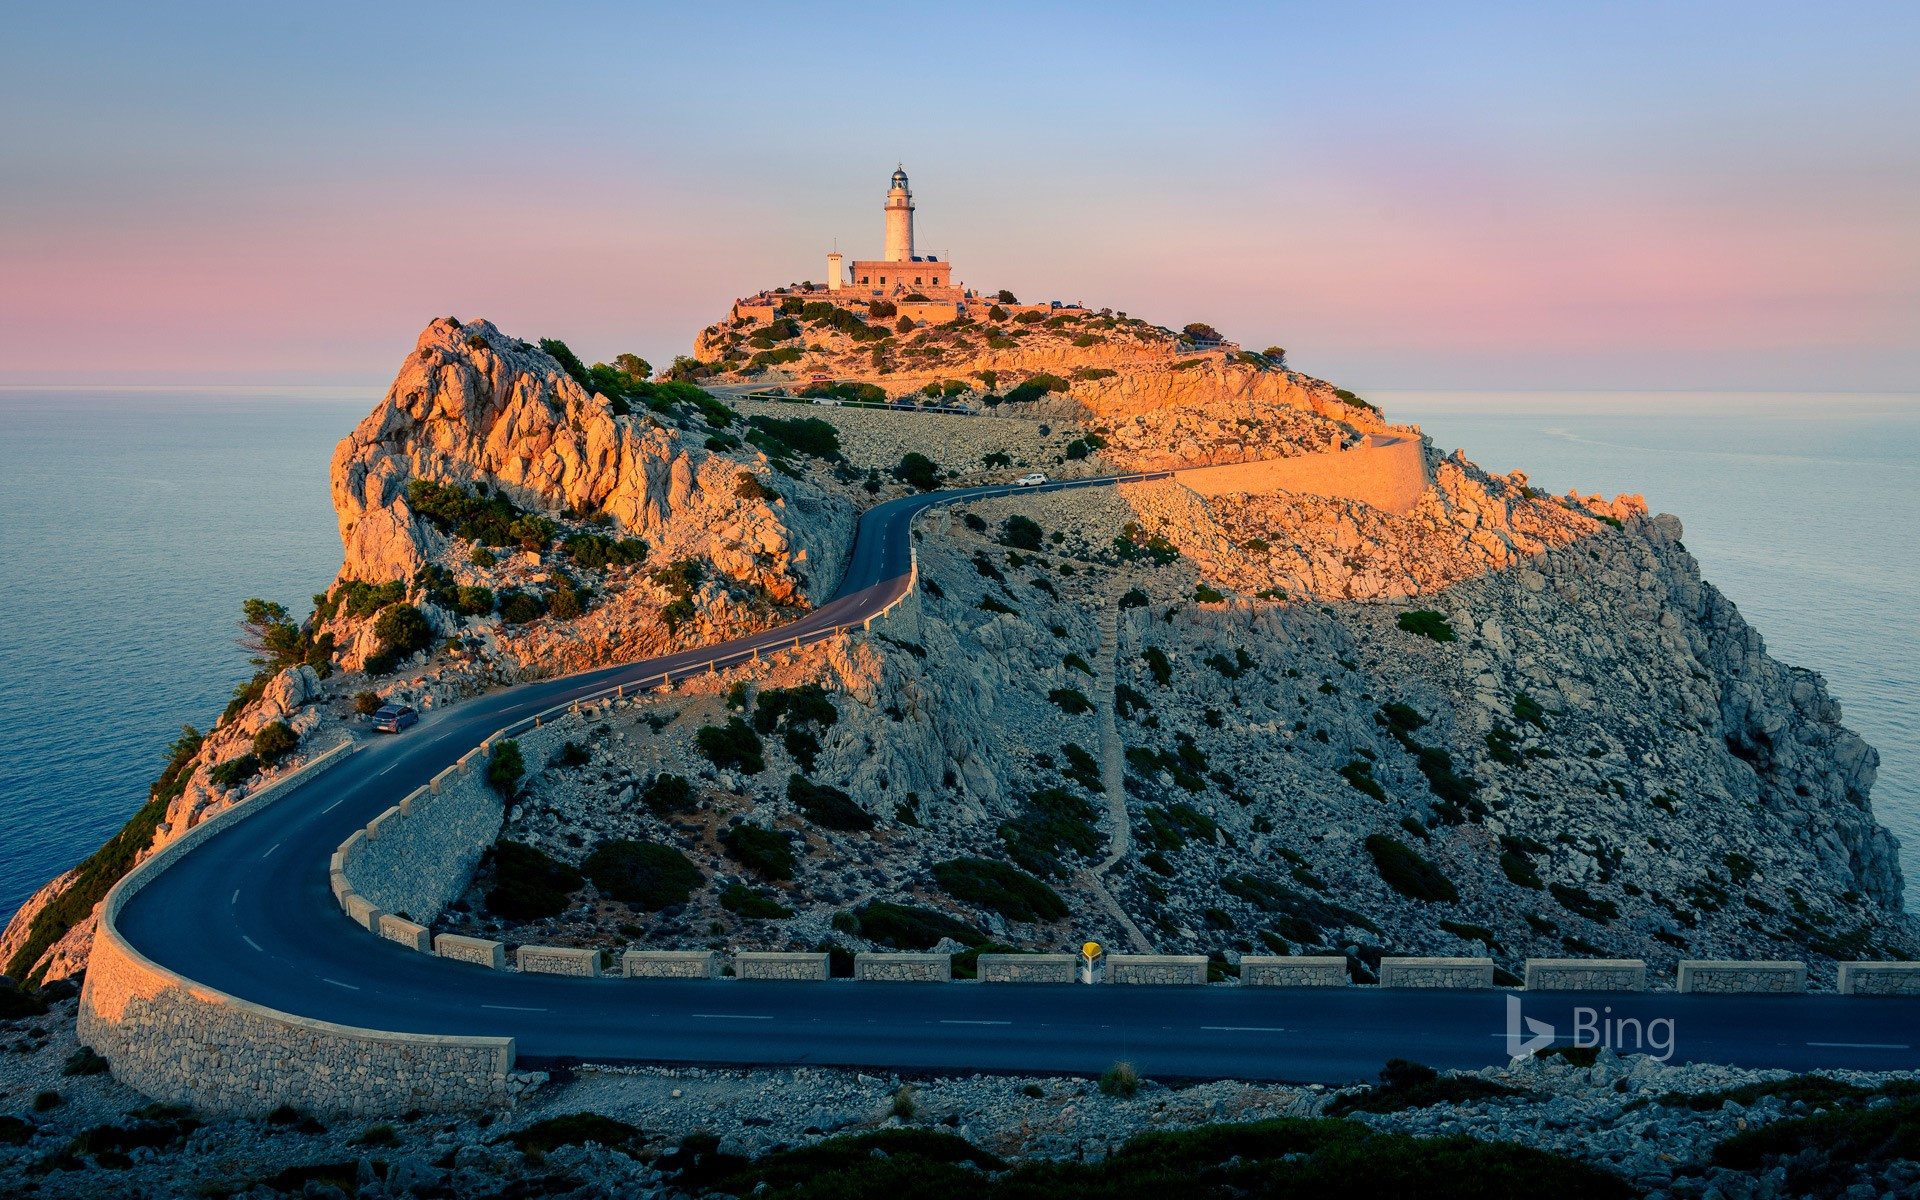 Formentor Lighthouse at the tip of Cap de Formentor, Mallorca, Spain